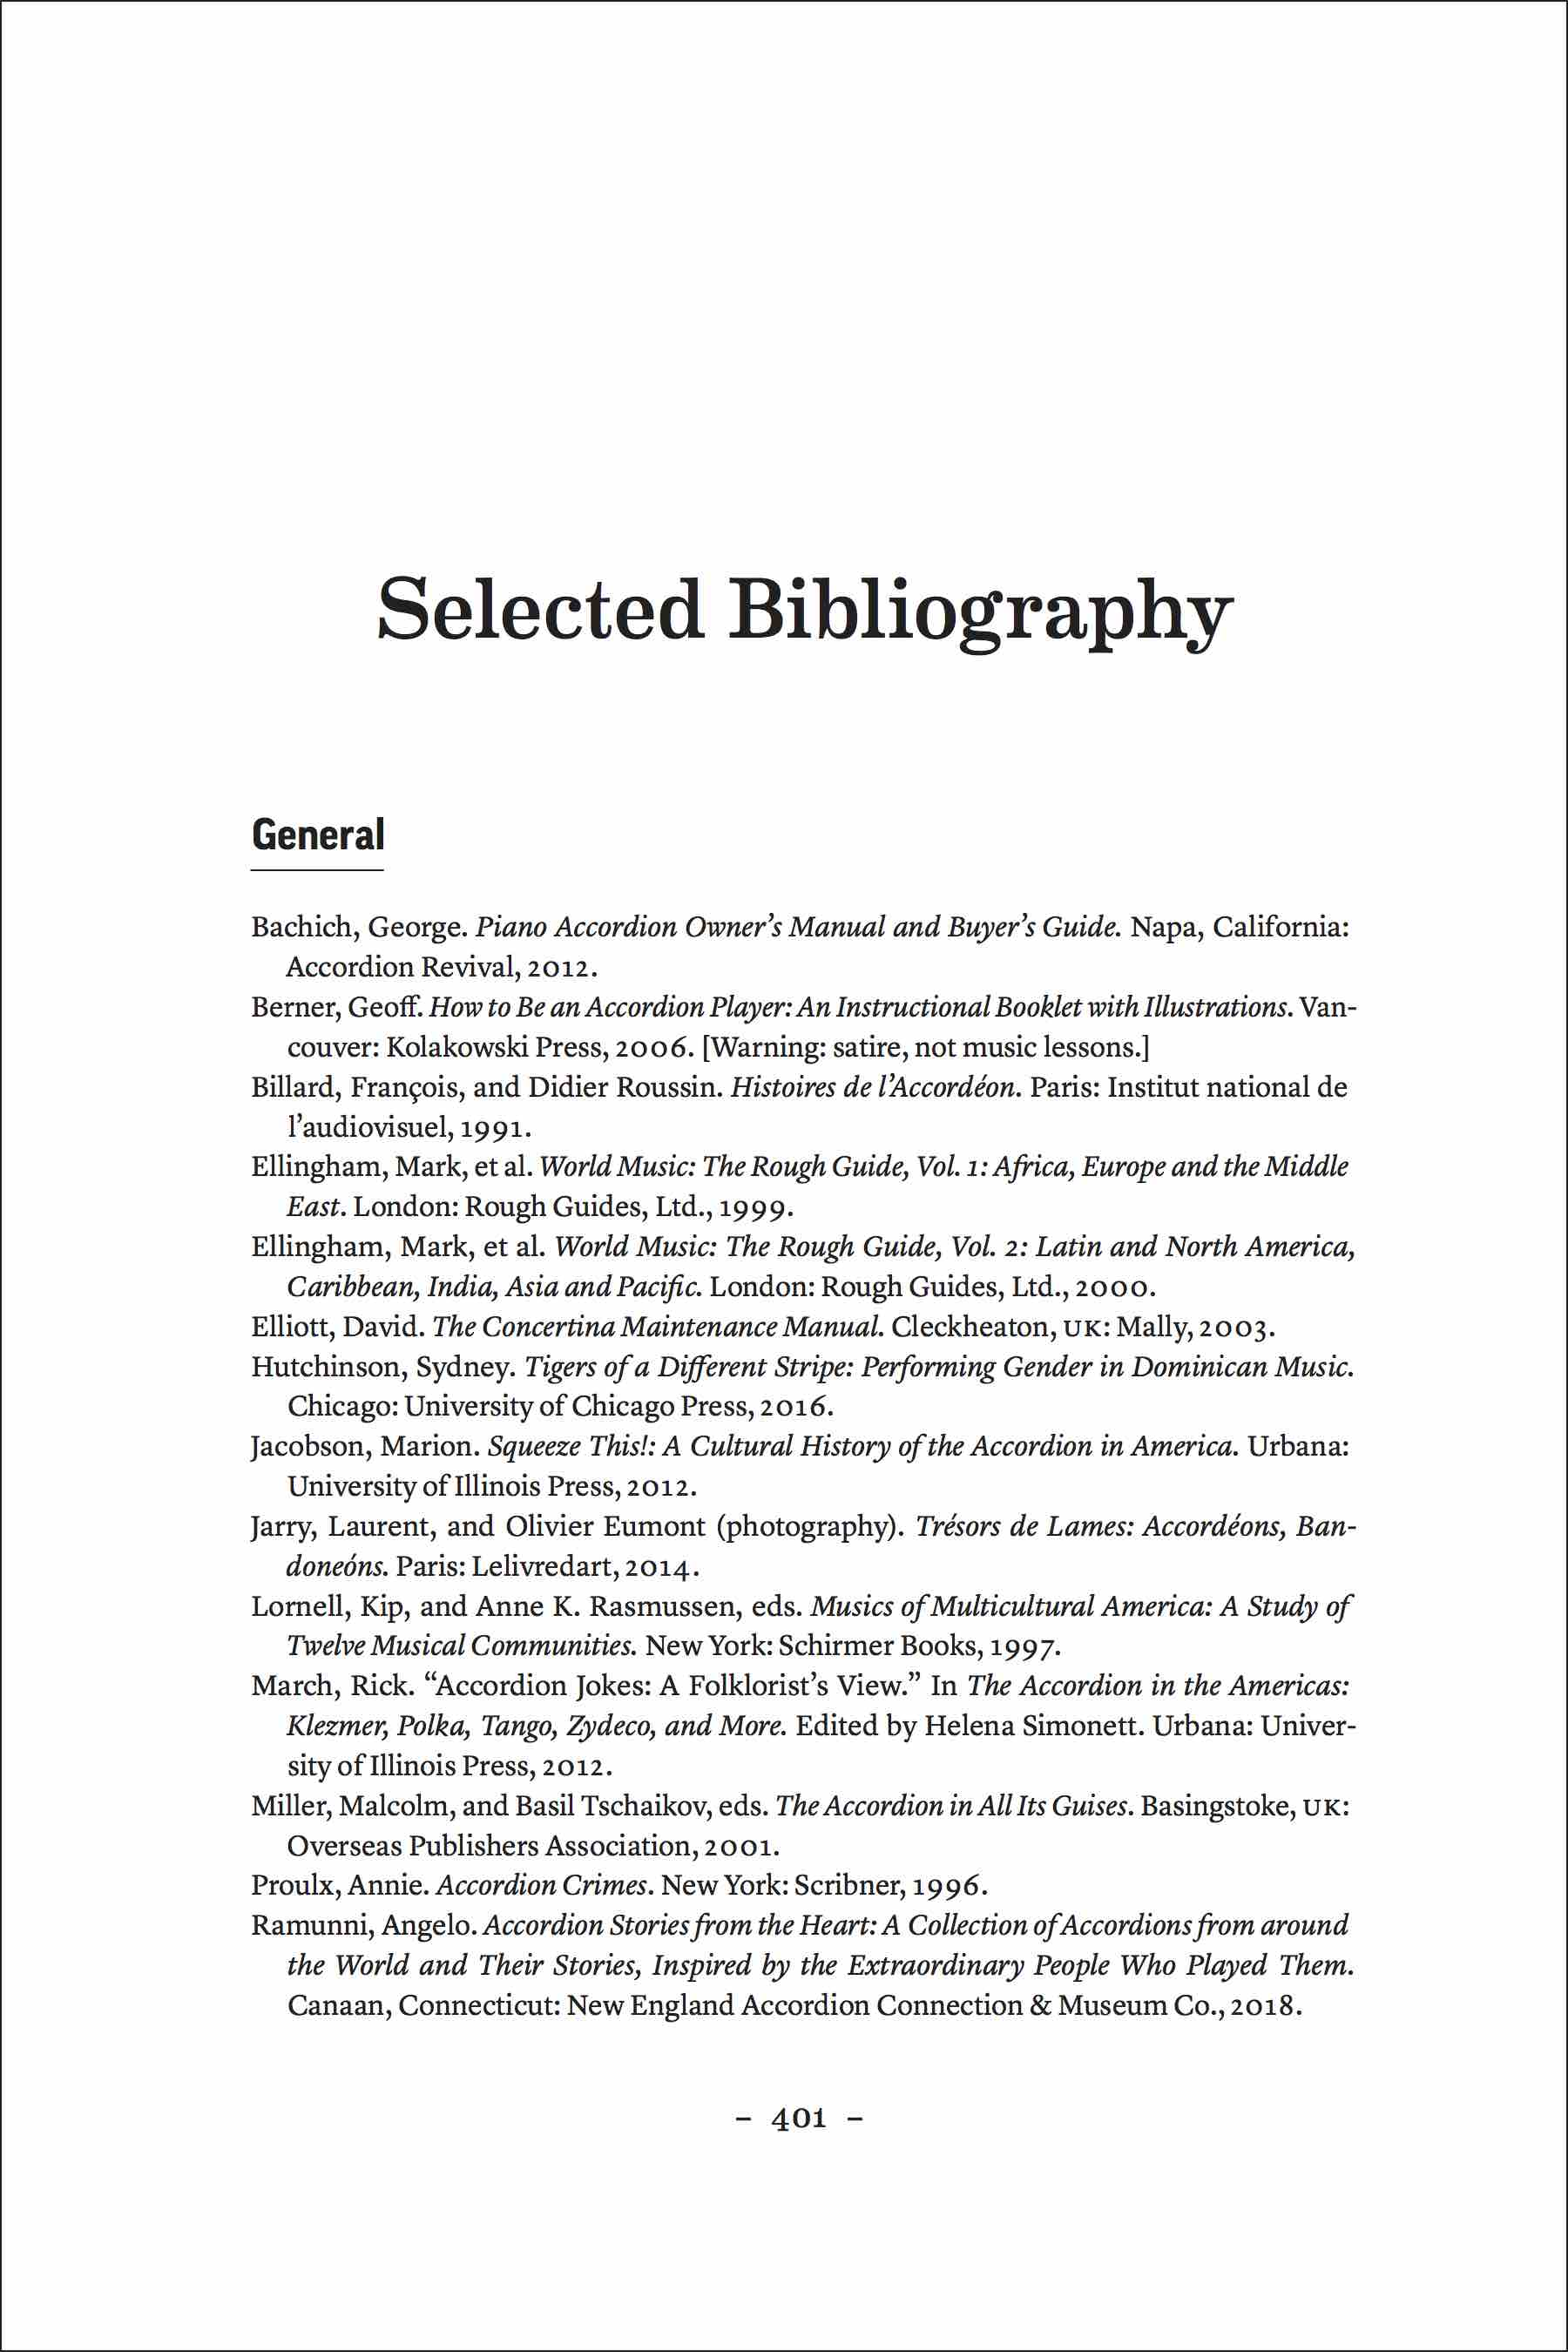 """Selected Bibliography"" opening page 401. Text starts: ""General: 1-Apr-2017 12:54 Bachich, George Piano Accordion Owner's Manual and Buyer's Guide 2012."" Followed by a page full o fsimilar references."